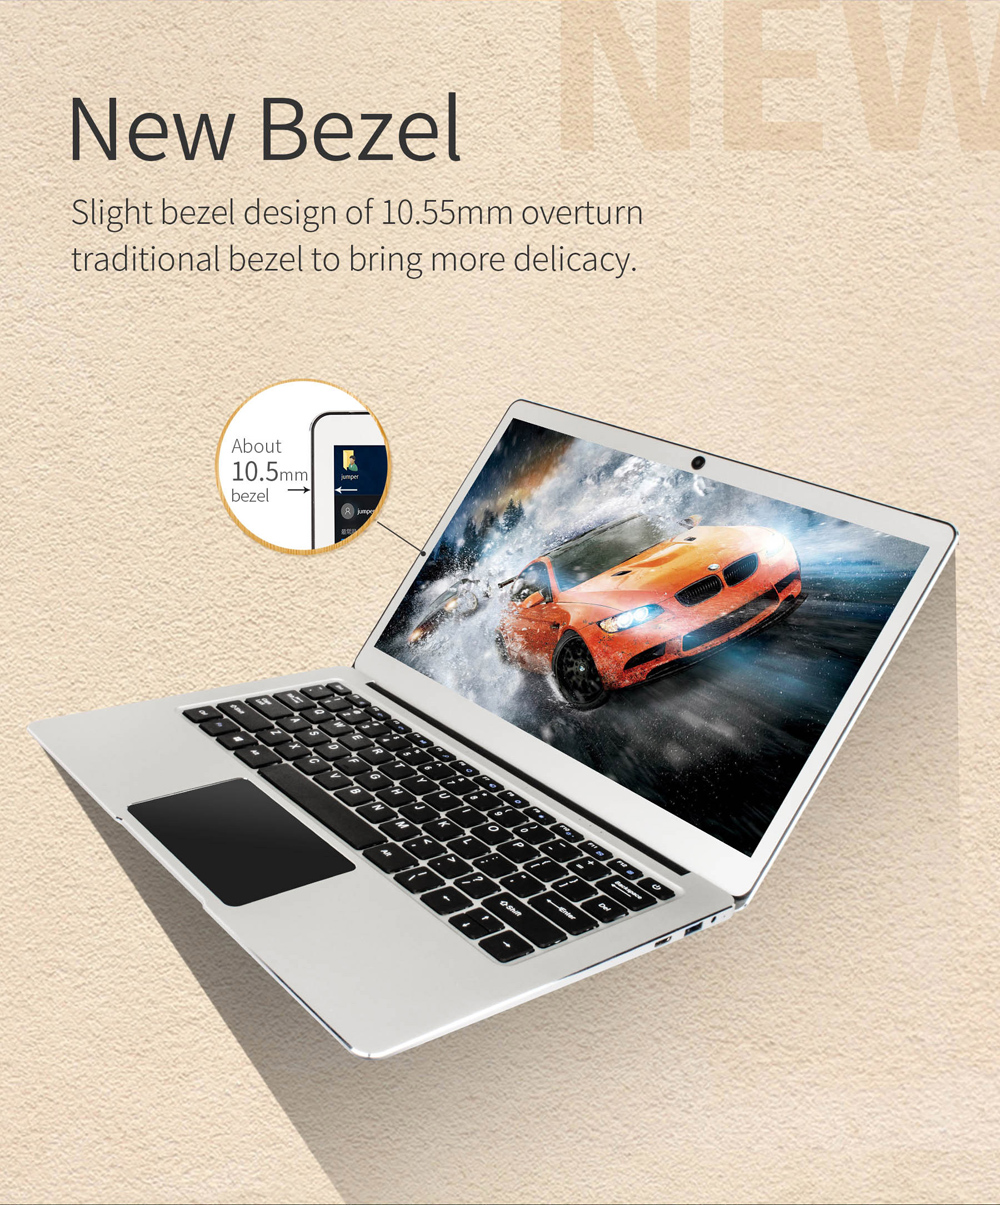 Jumper EZbook 3 Pro Laptop 13.3 Inch IPS Screen Intel J3455 6GB+64GB Notebook 2.4G/5G WiFi With M.2 SATA SSD Slot